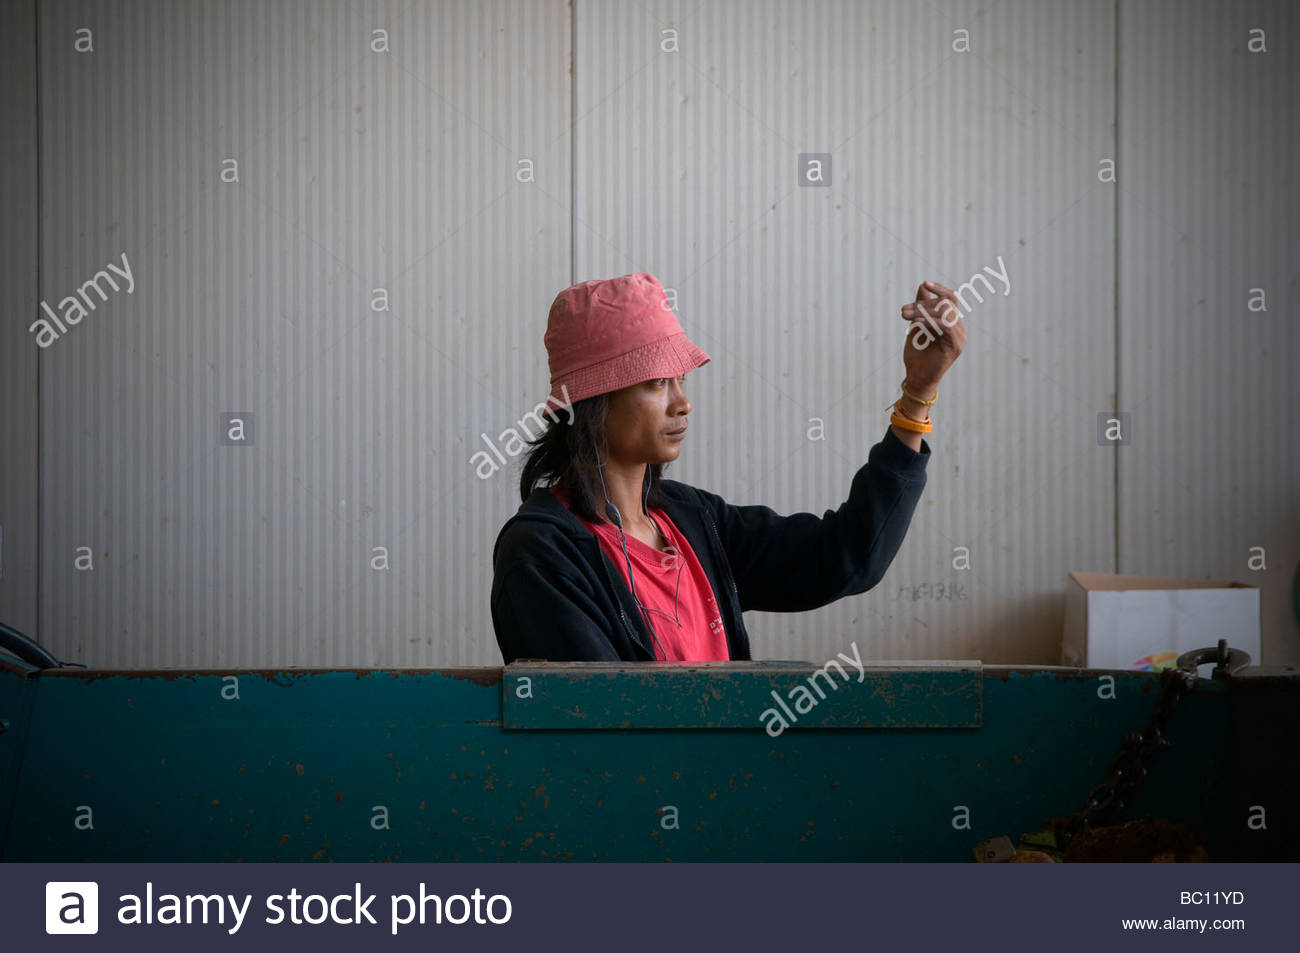 Thai migrant worker at work in Israel Stock Photo